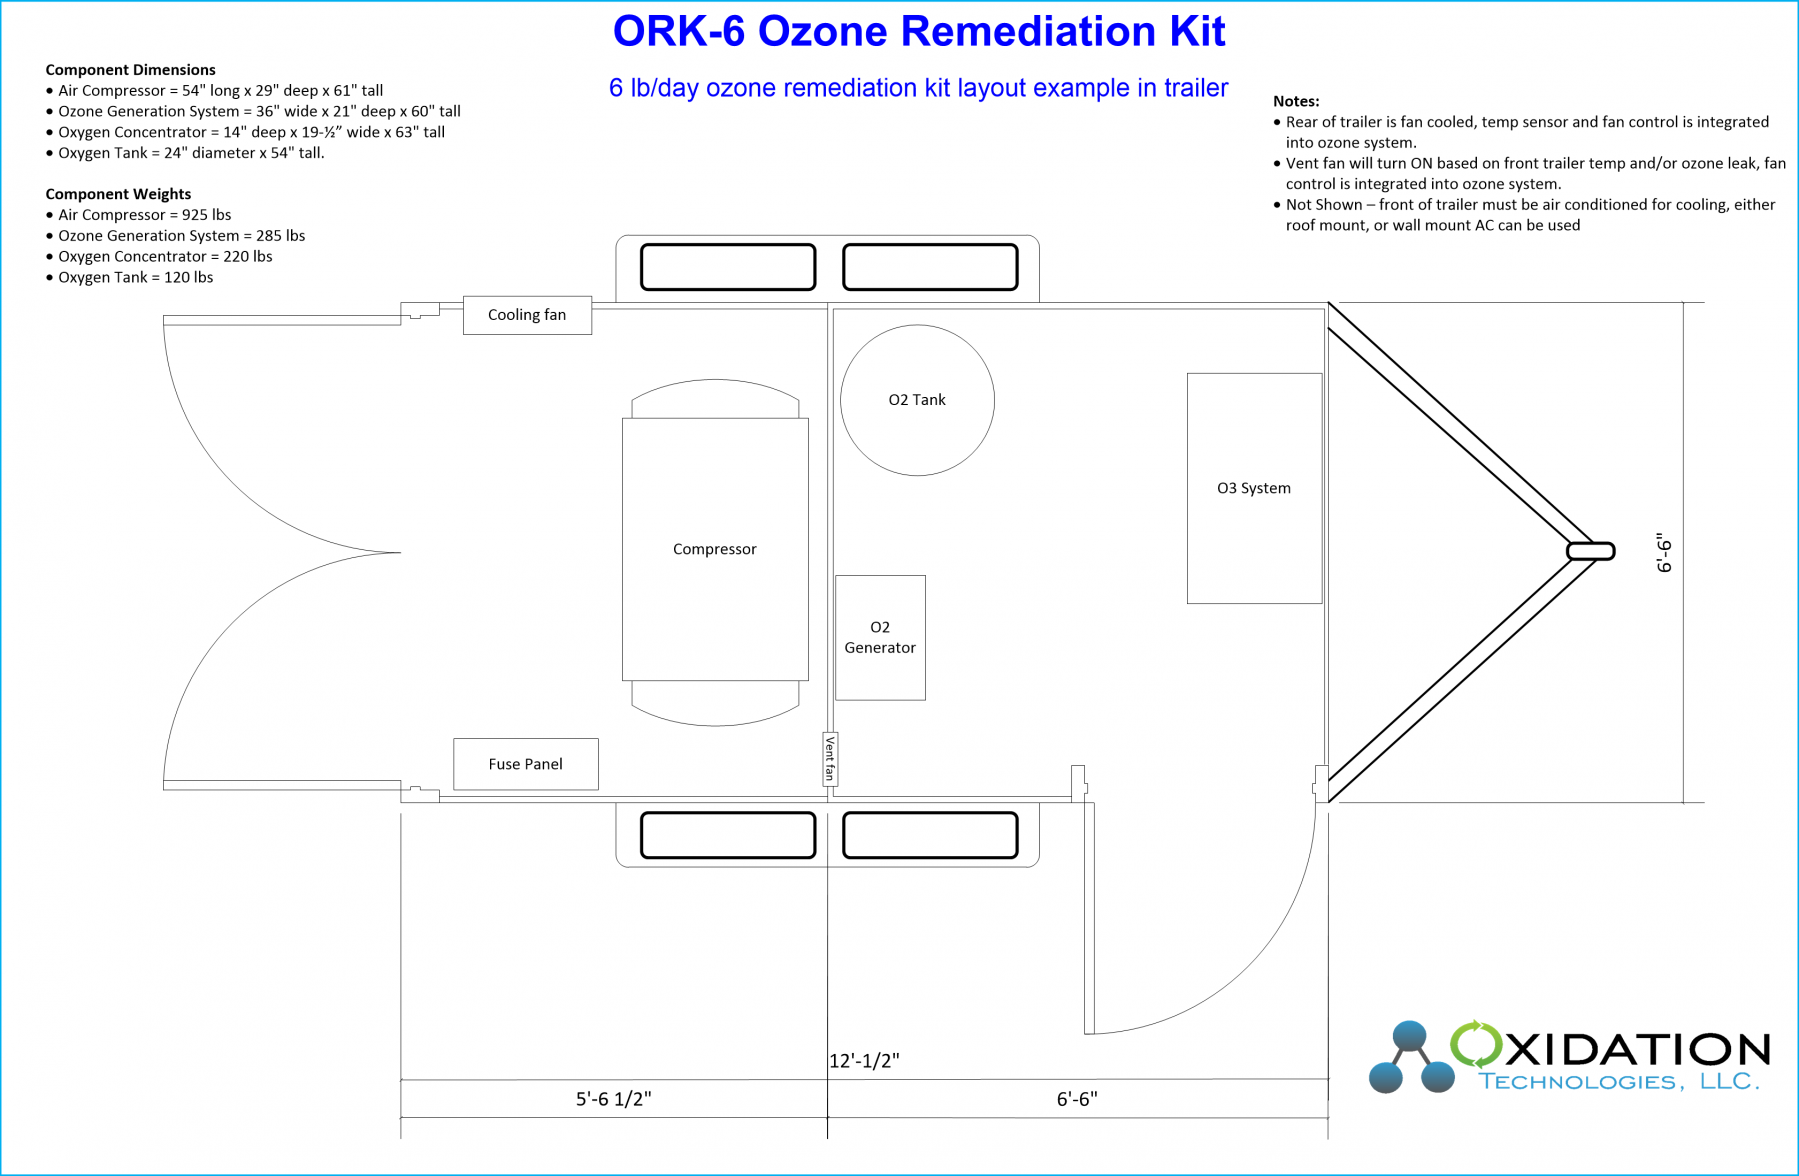 ORK-6 Modular ozone system trailer layout diagram